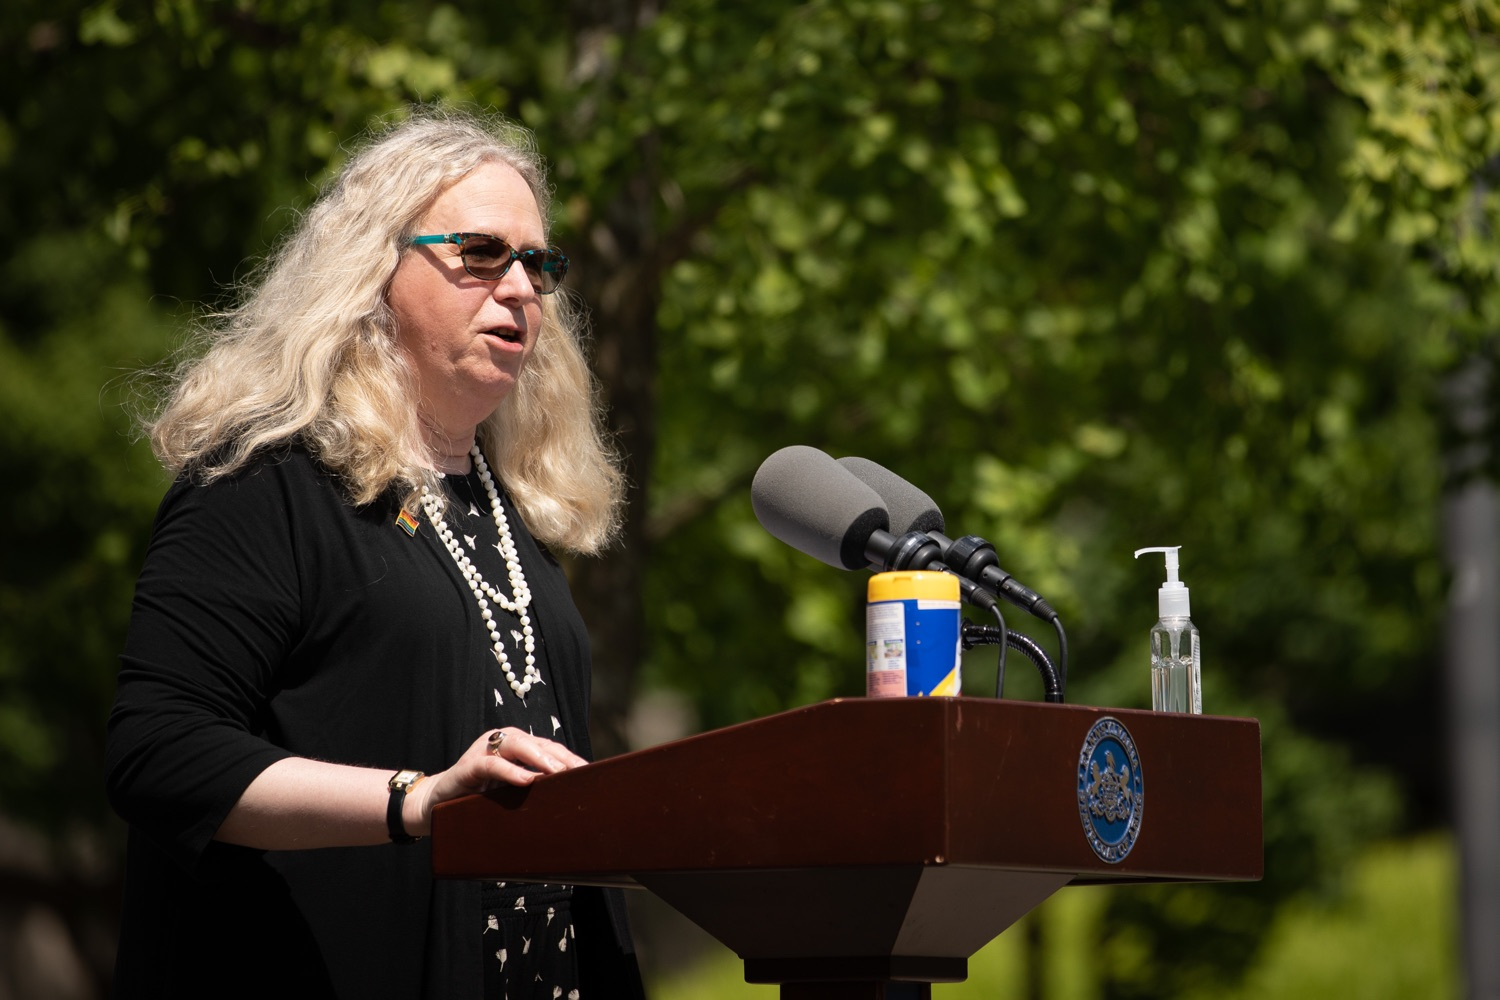 "<a href=""https://filesource.wostreaming.net/commonwealthofpa/photo/18093_gov-healthcare_workers_dz_08.jpg"" target=""_blank"">⇣ Download Photo<br></a>Sec. of Health Dr. Rachel Levine speaking during her visit to Milton S. Hershey Medical Center. As the commonwealth continues its measured, phased reopening and COVID-19 case counts continue to decline, Governor Tom Wolf visited Penn State Milton S. Hershey Medical Center today to thank staff and learn more about how the facility is handling the pandemic and preparing for a possible resurgence in the fall.  Harrisburg, PA  June 24, 2020"